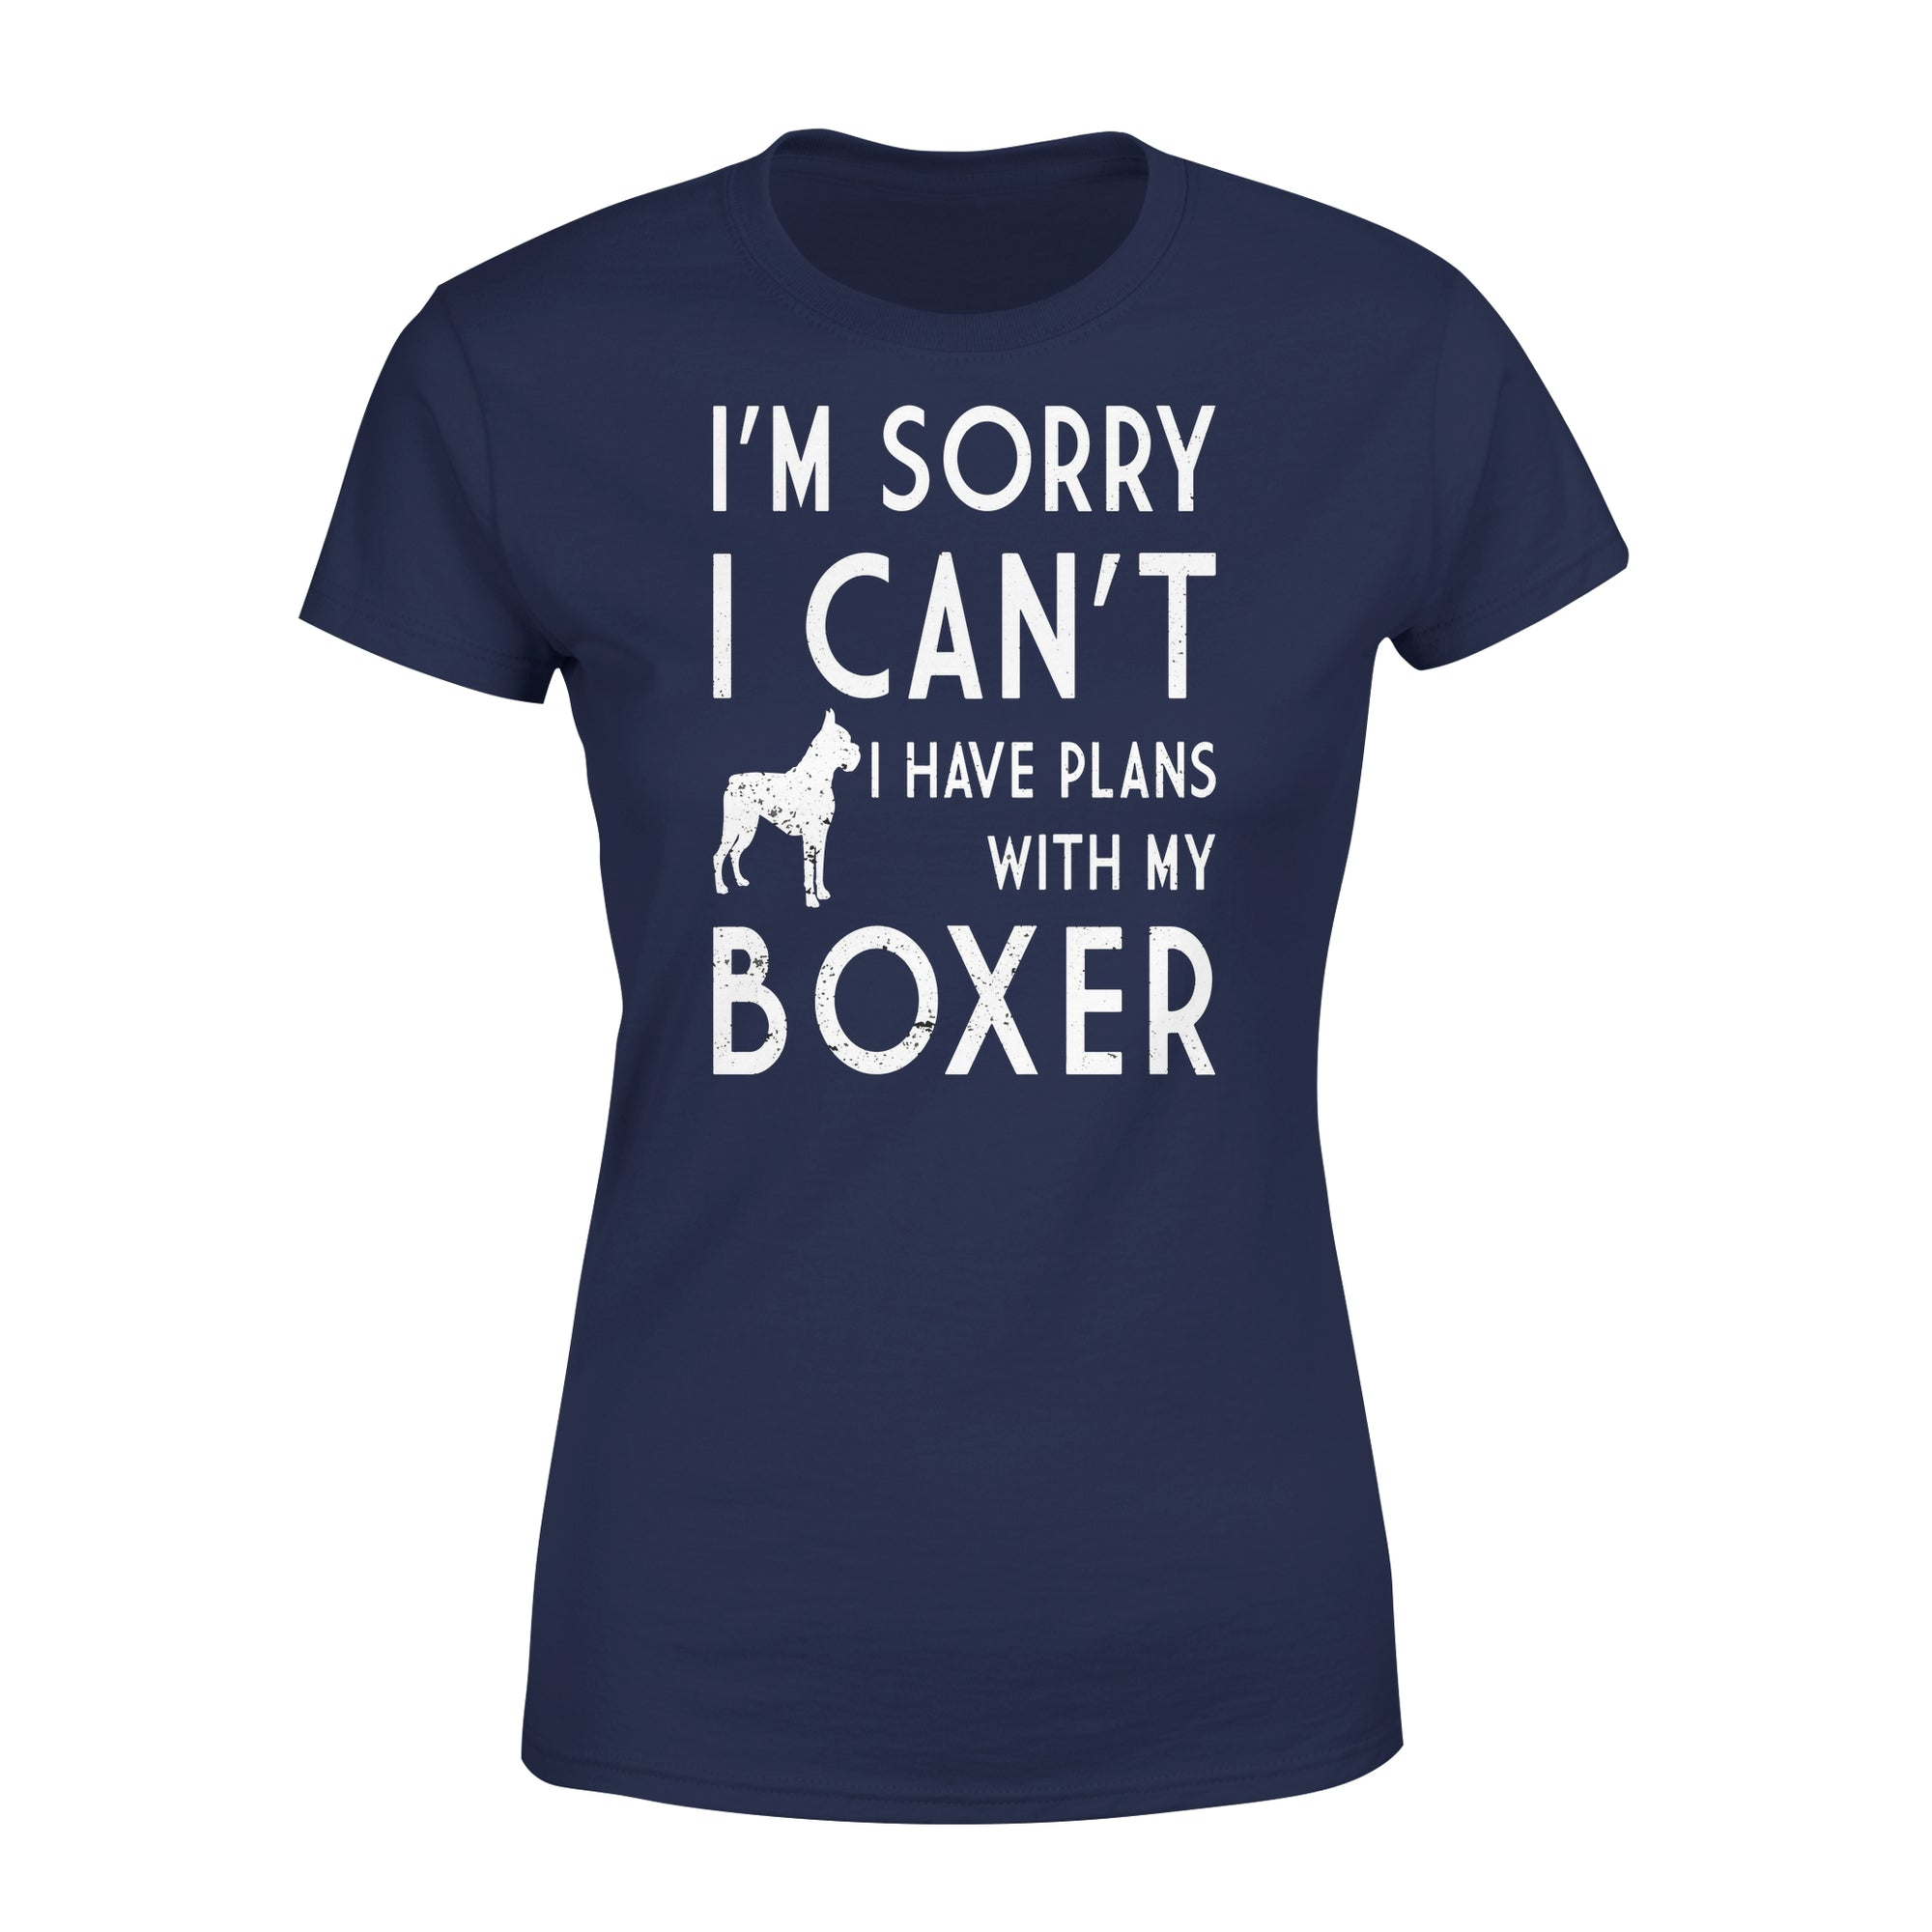 VIRA Premium Women's Tee For Boxer Lovers